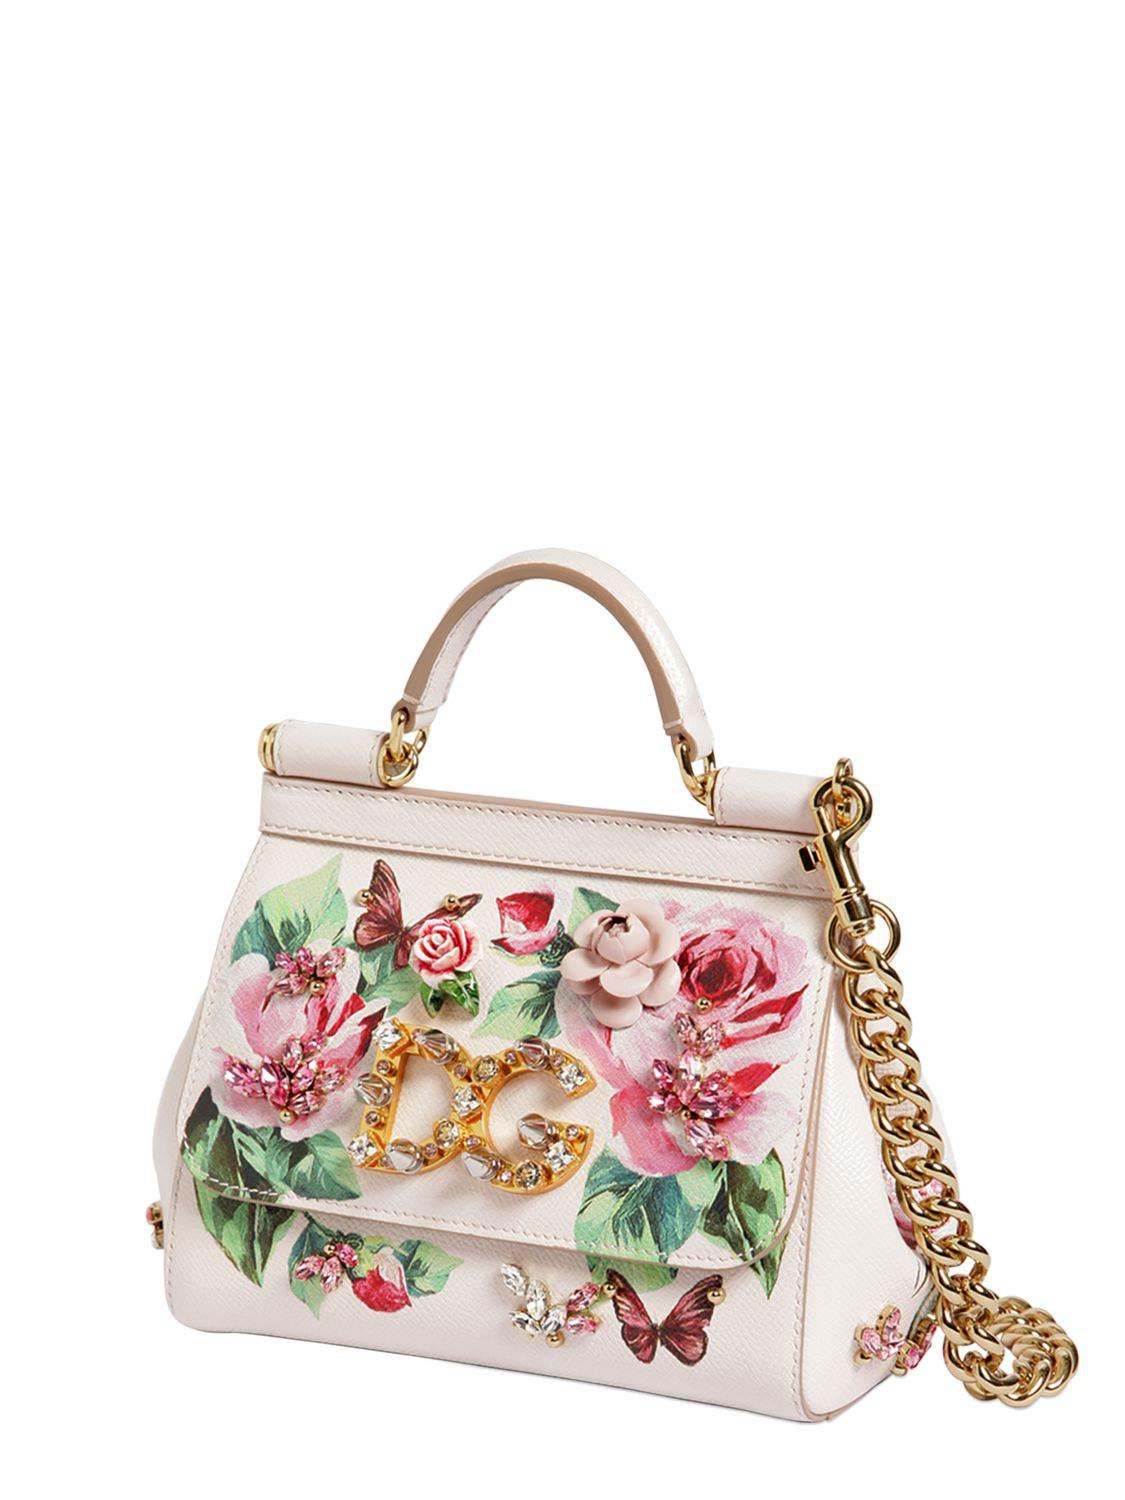 acc1fa54be72 Lyst - Dolce   Gabbana Small Sicily Rose Printed Leather Bag